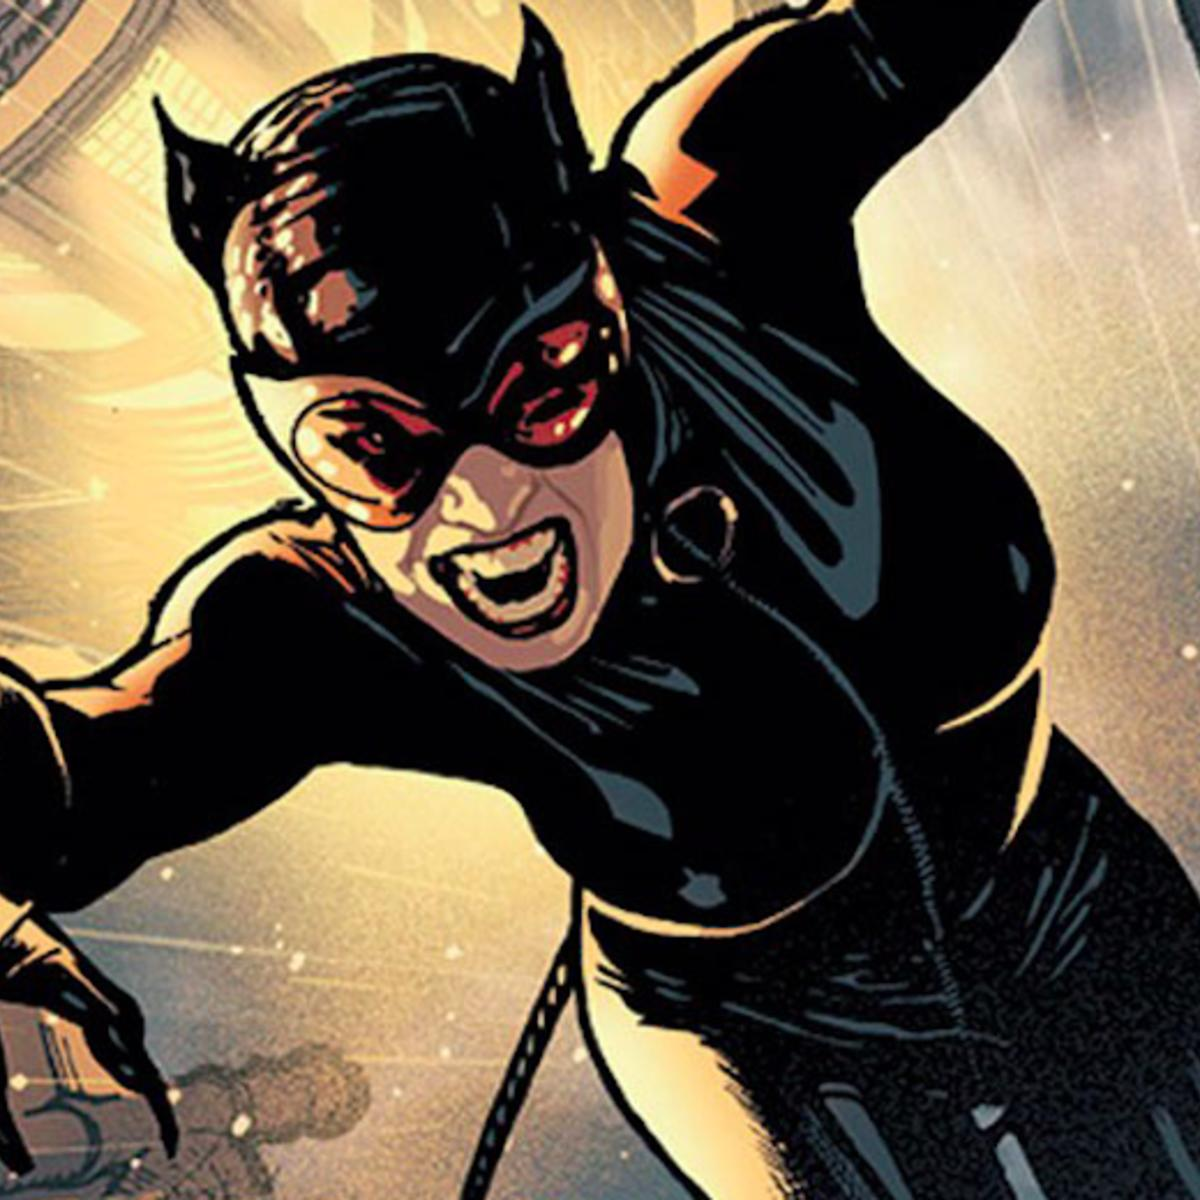 Catwoman Comes Out as Bisexual in New Comic Book